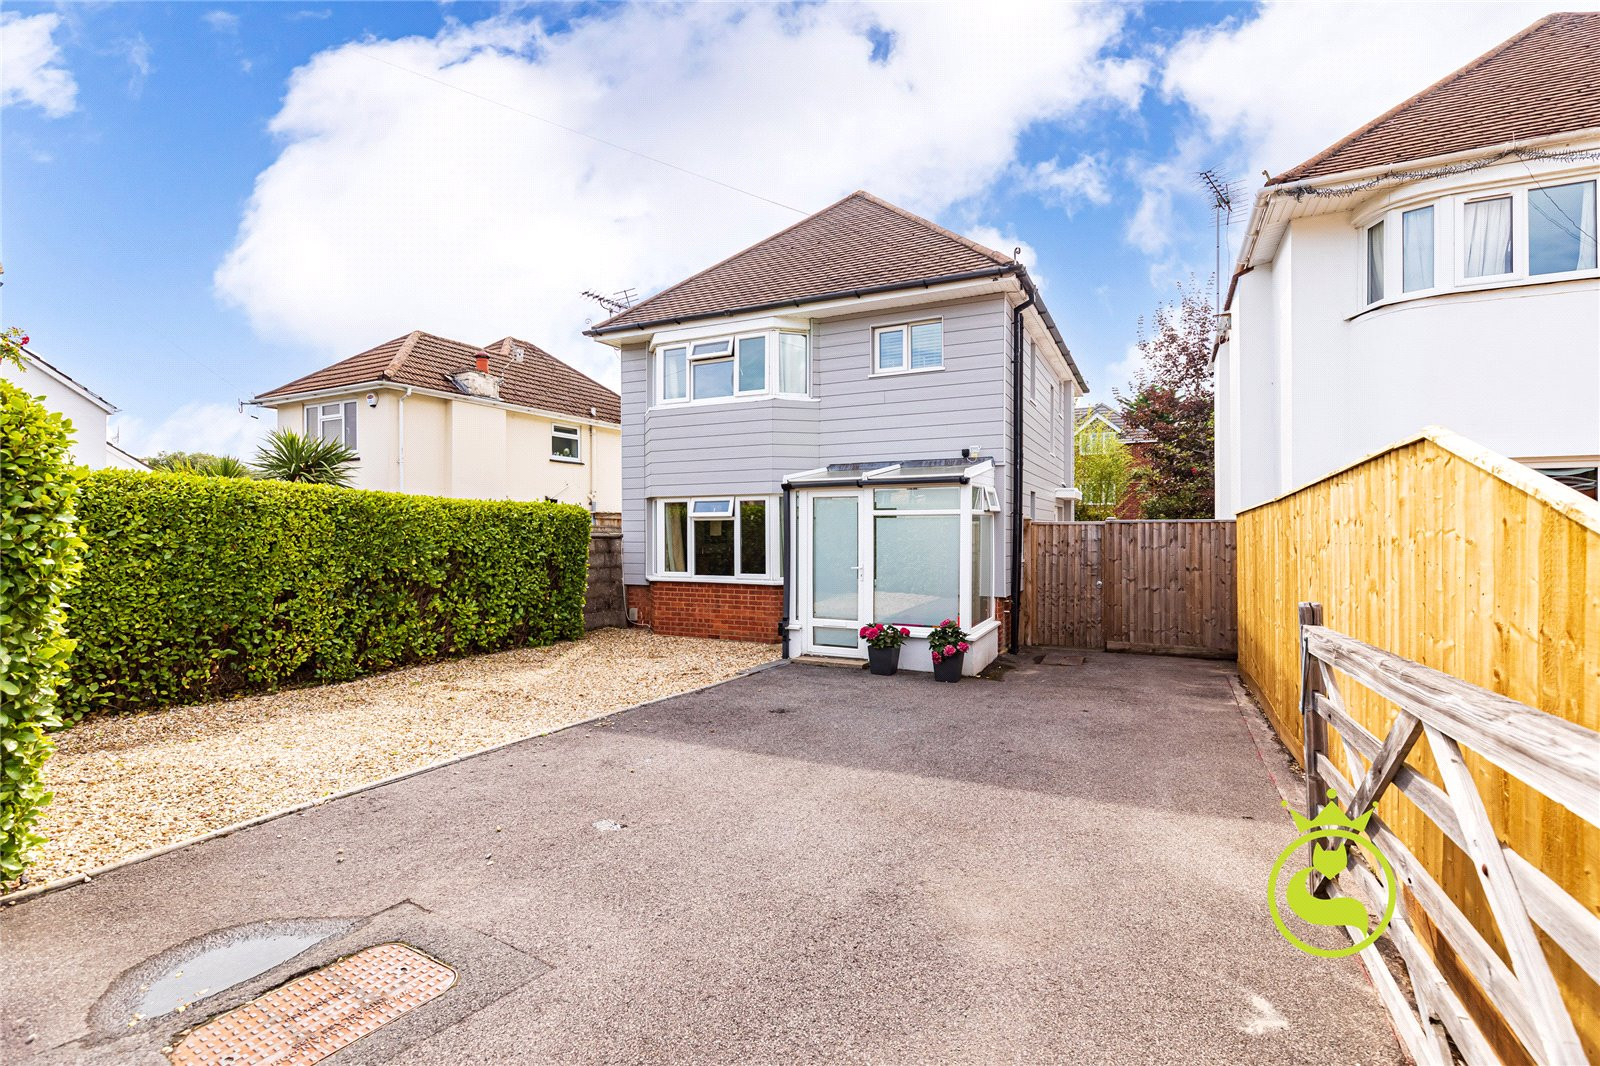 3 bed house for sale in Chapel Road, Lower Parkstone, BH14